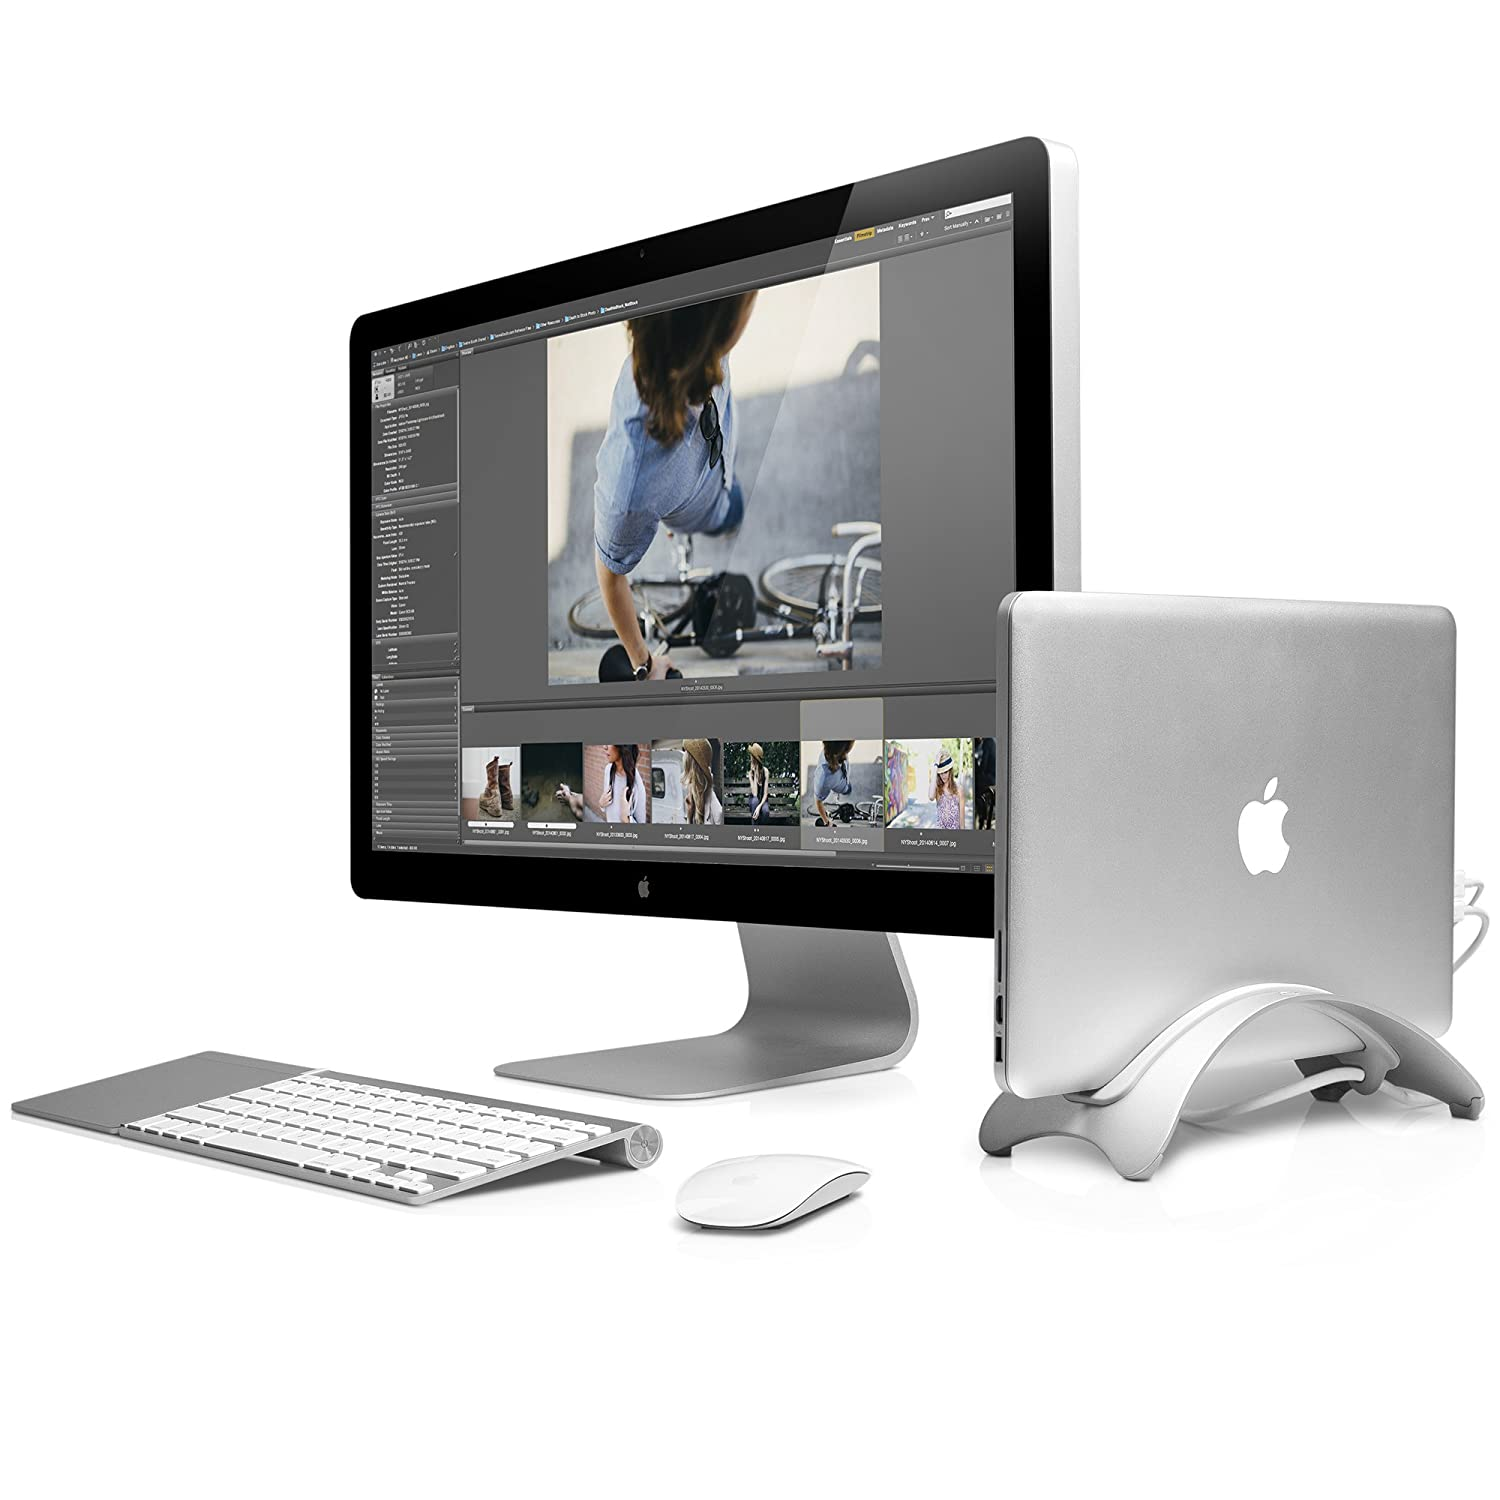 Best Macbook Pro Docking Stations List And Reviews 2016